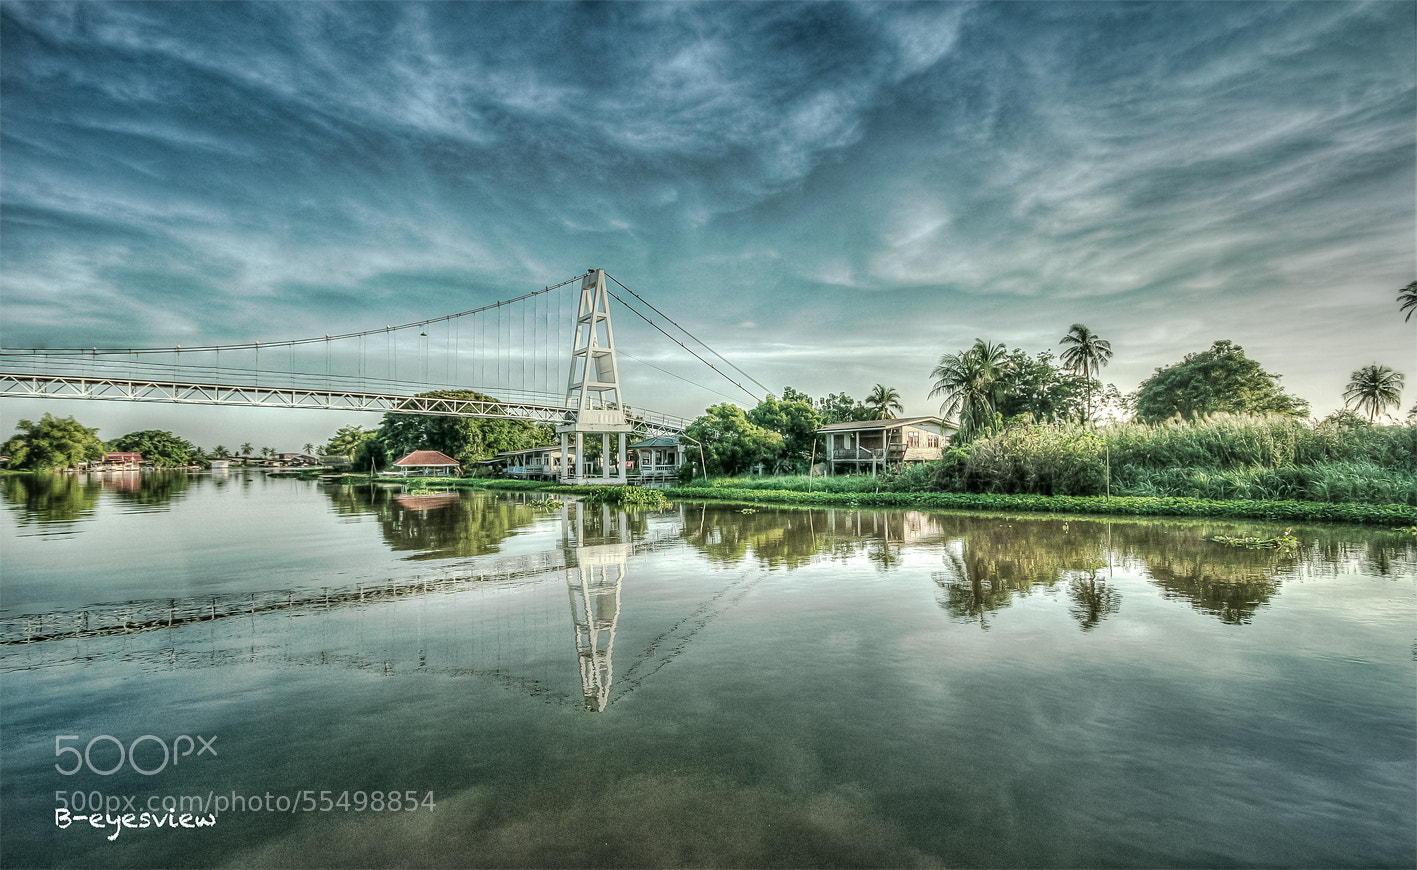 Photograph River of life by b-eyesview  on 500px